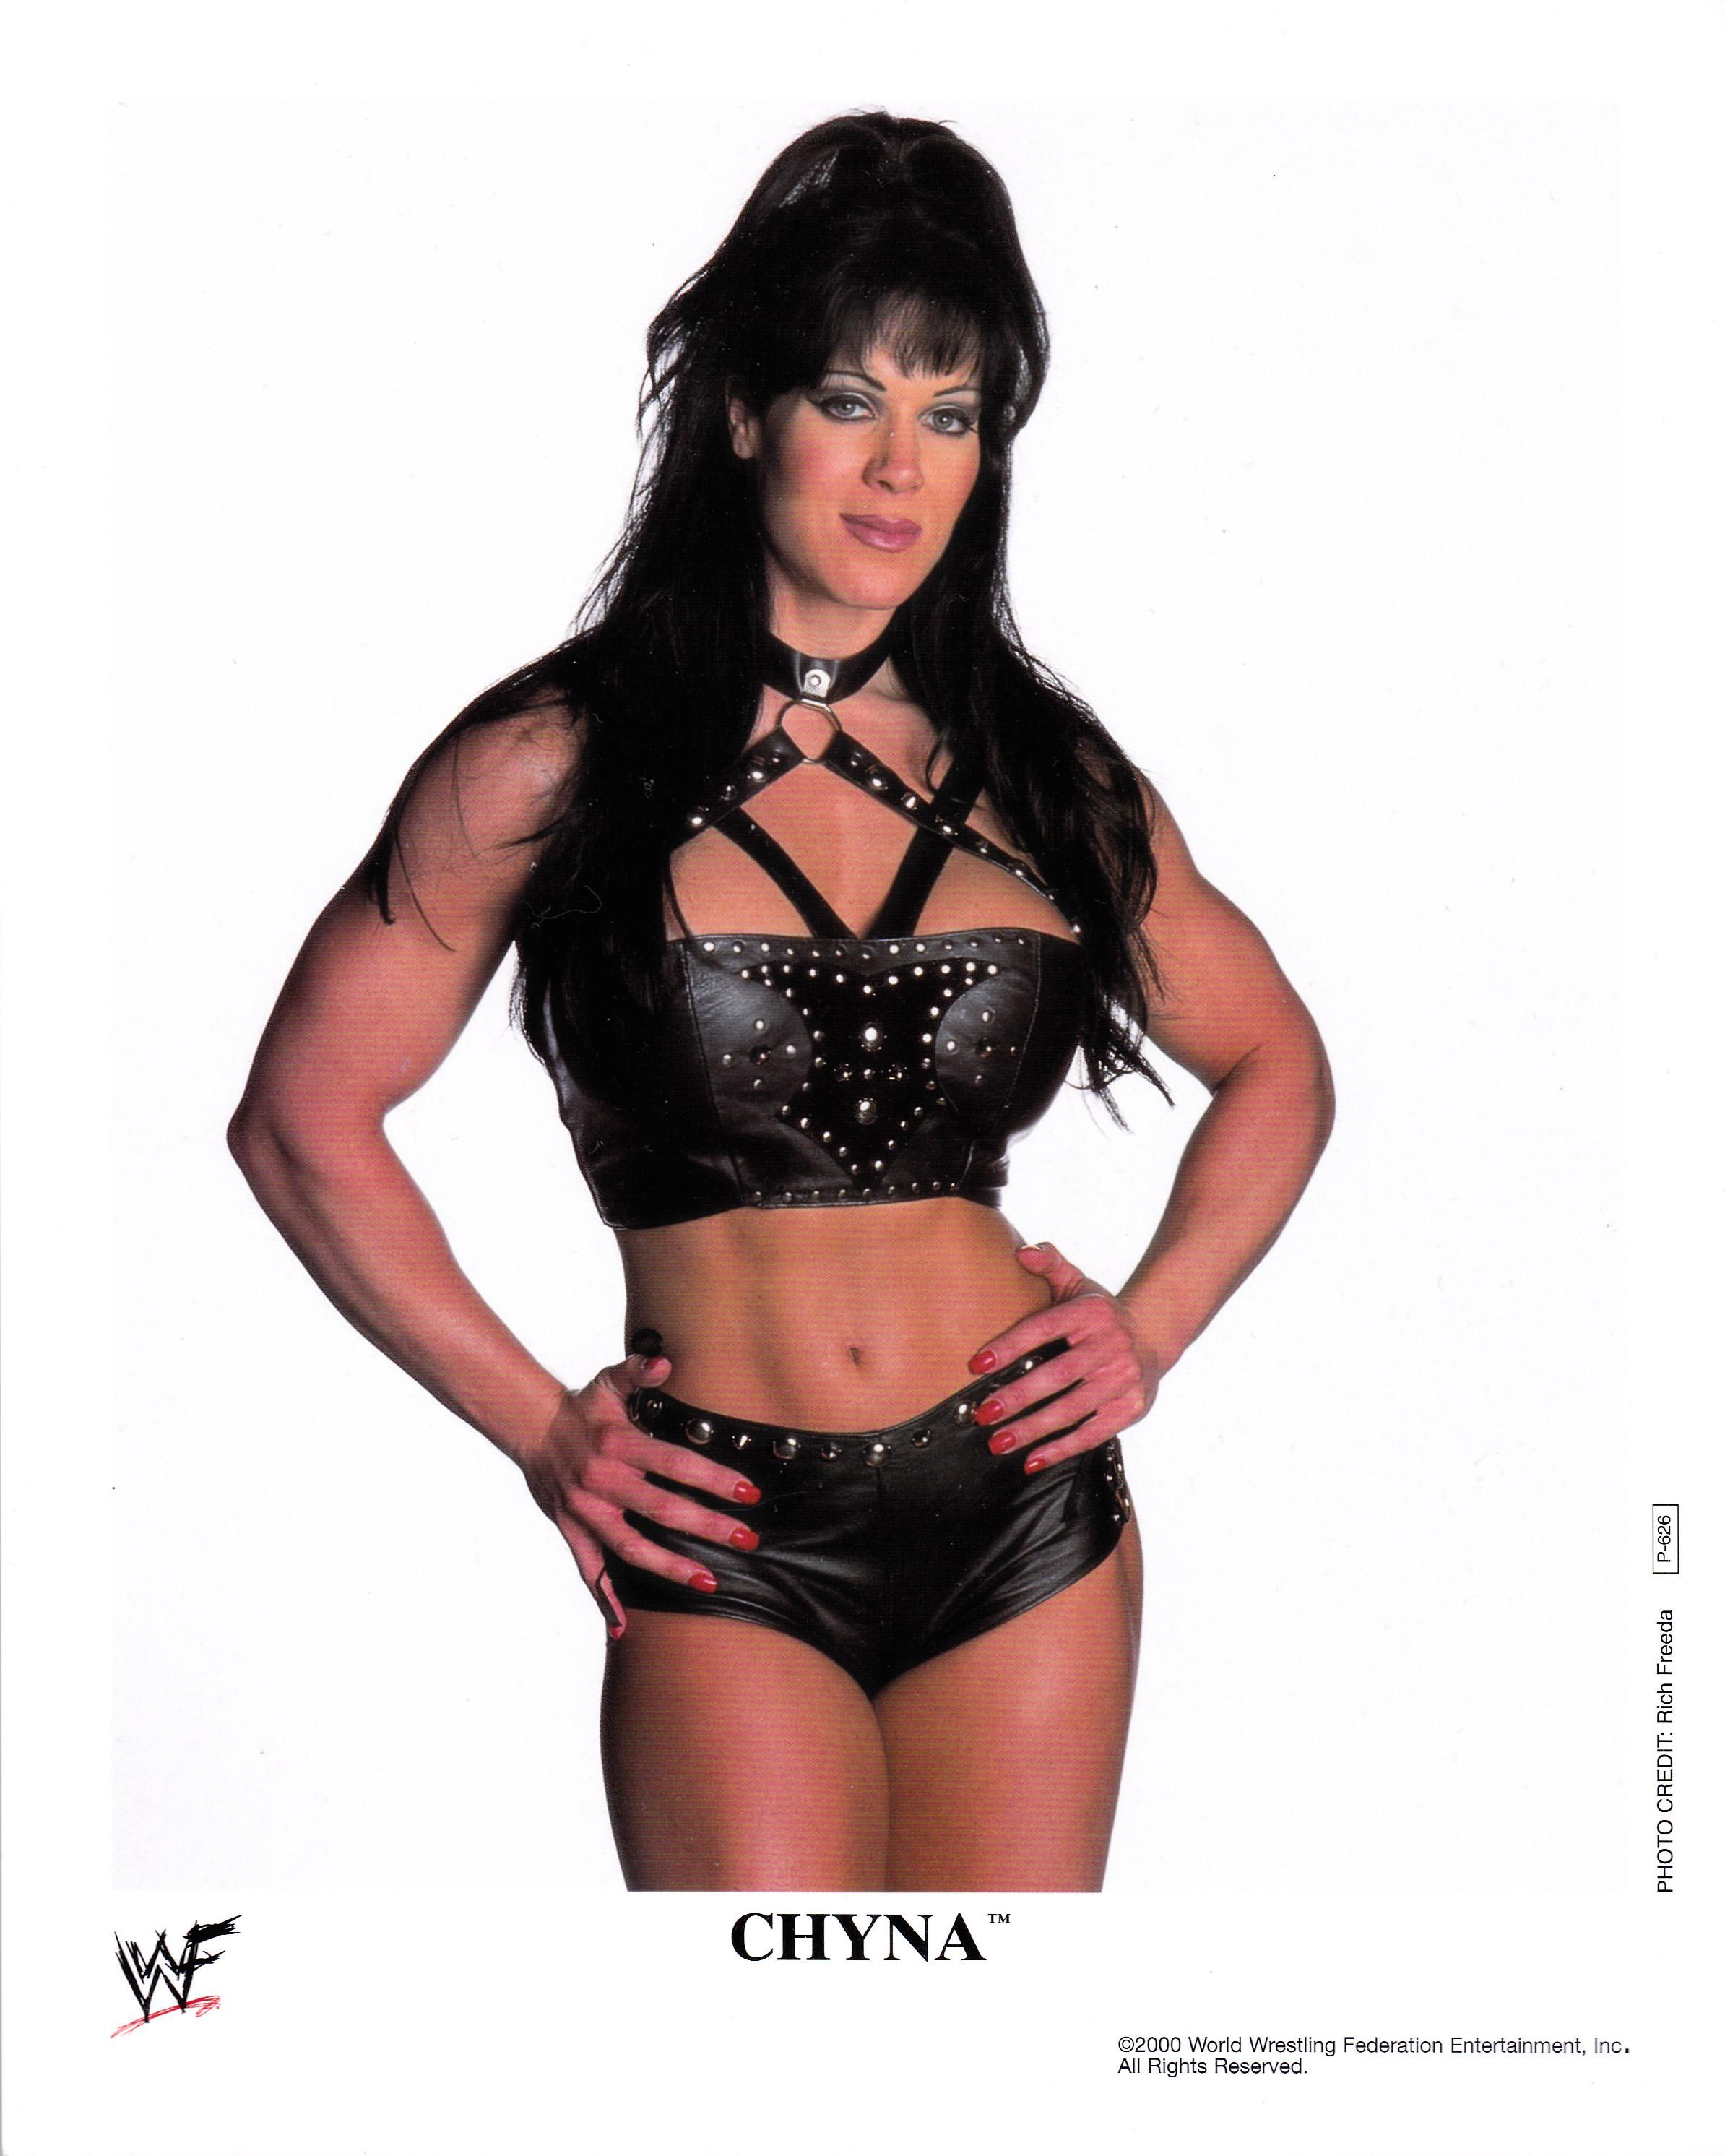 Chyna wwe diva fuck gif, erotic father daughter literature